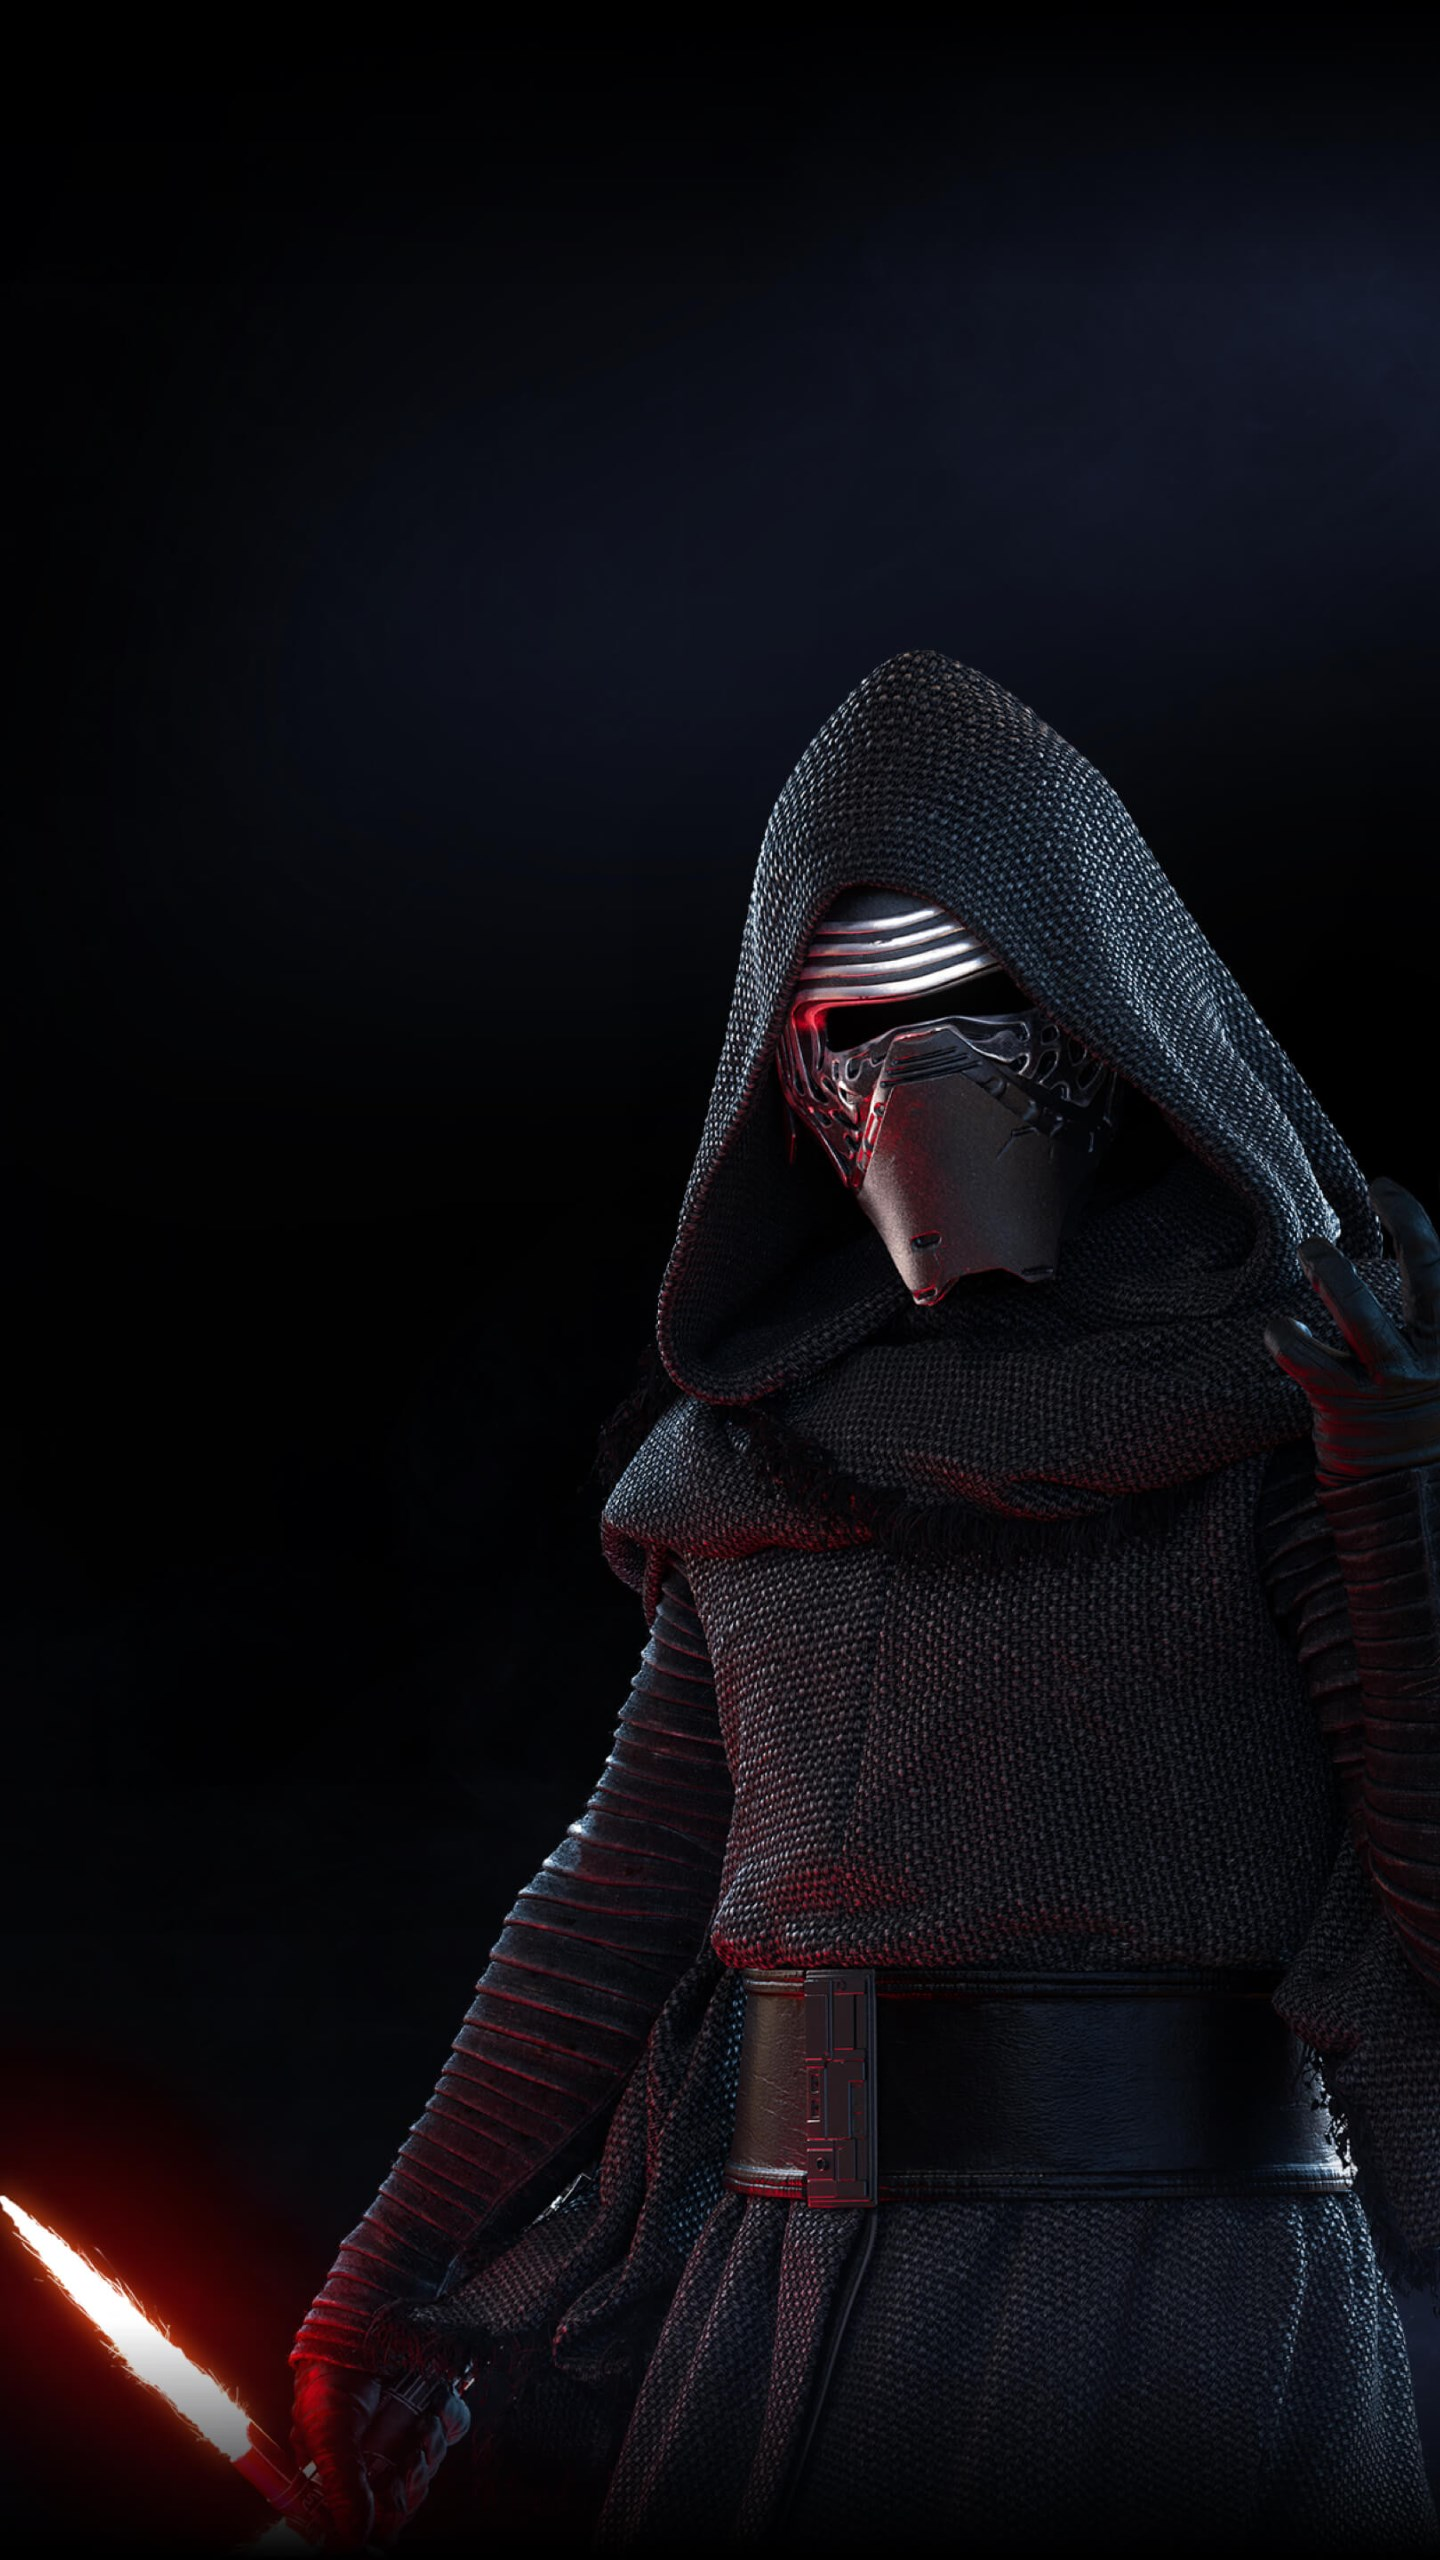 Download Wallpaper Kylo Ren From Star Wars Battlefront 2 1440x2560